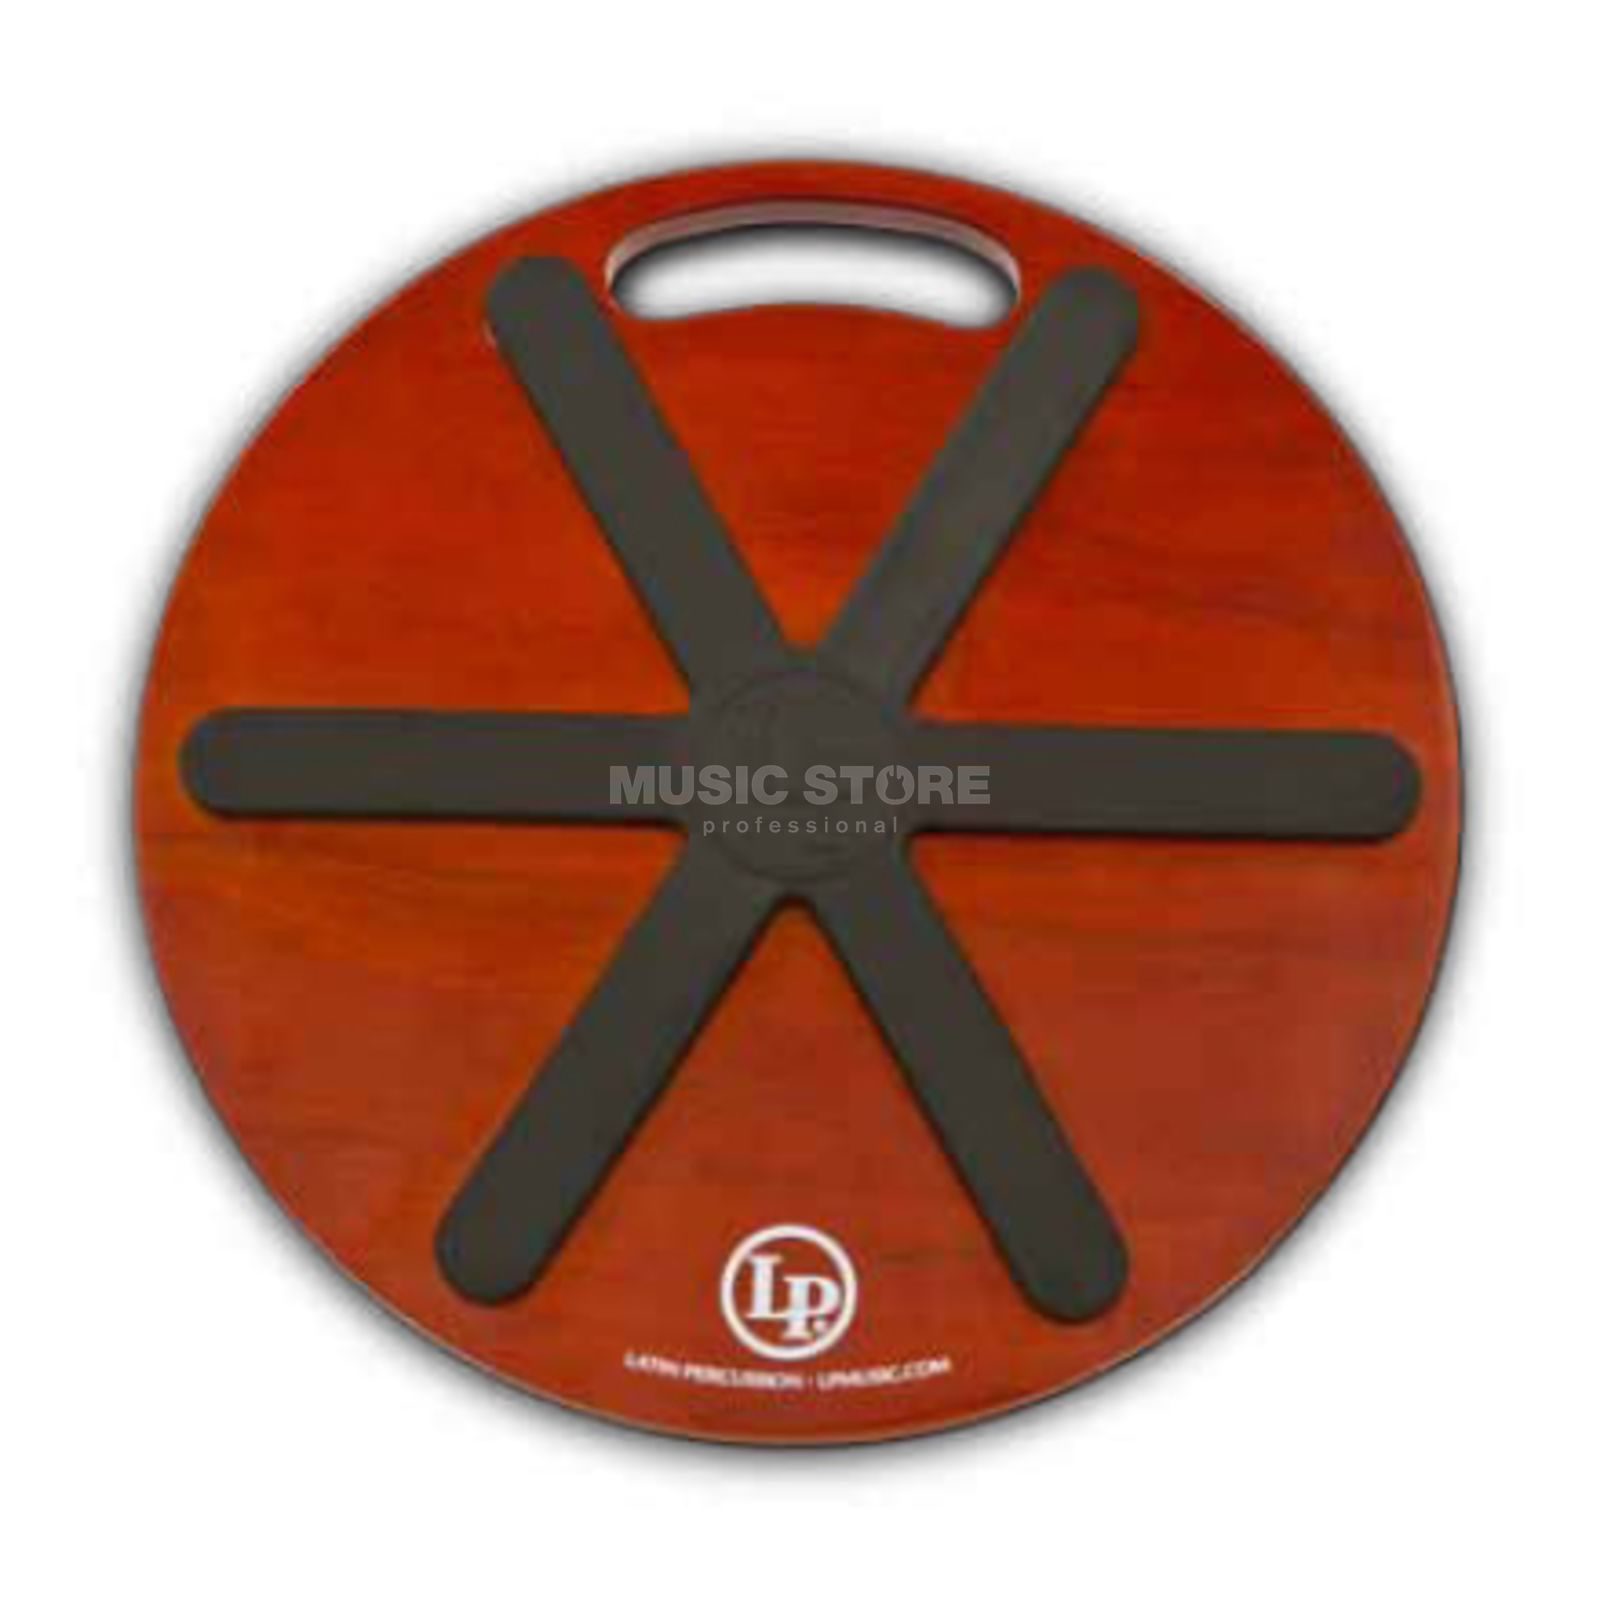 Latin Percussion Sound Platform LP633  Produktbild